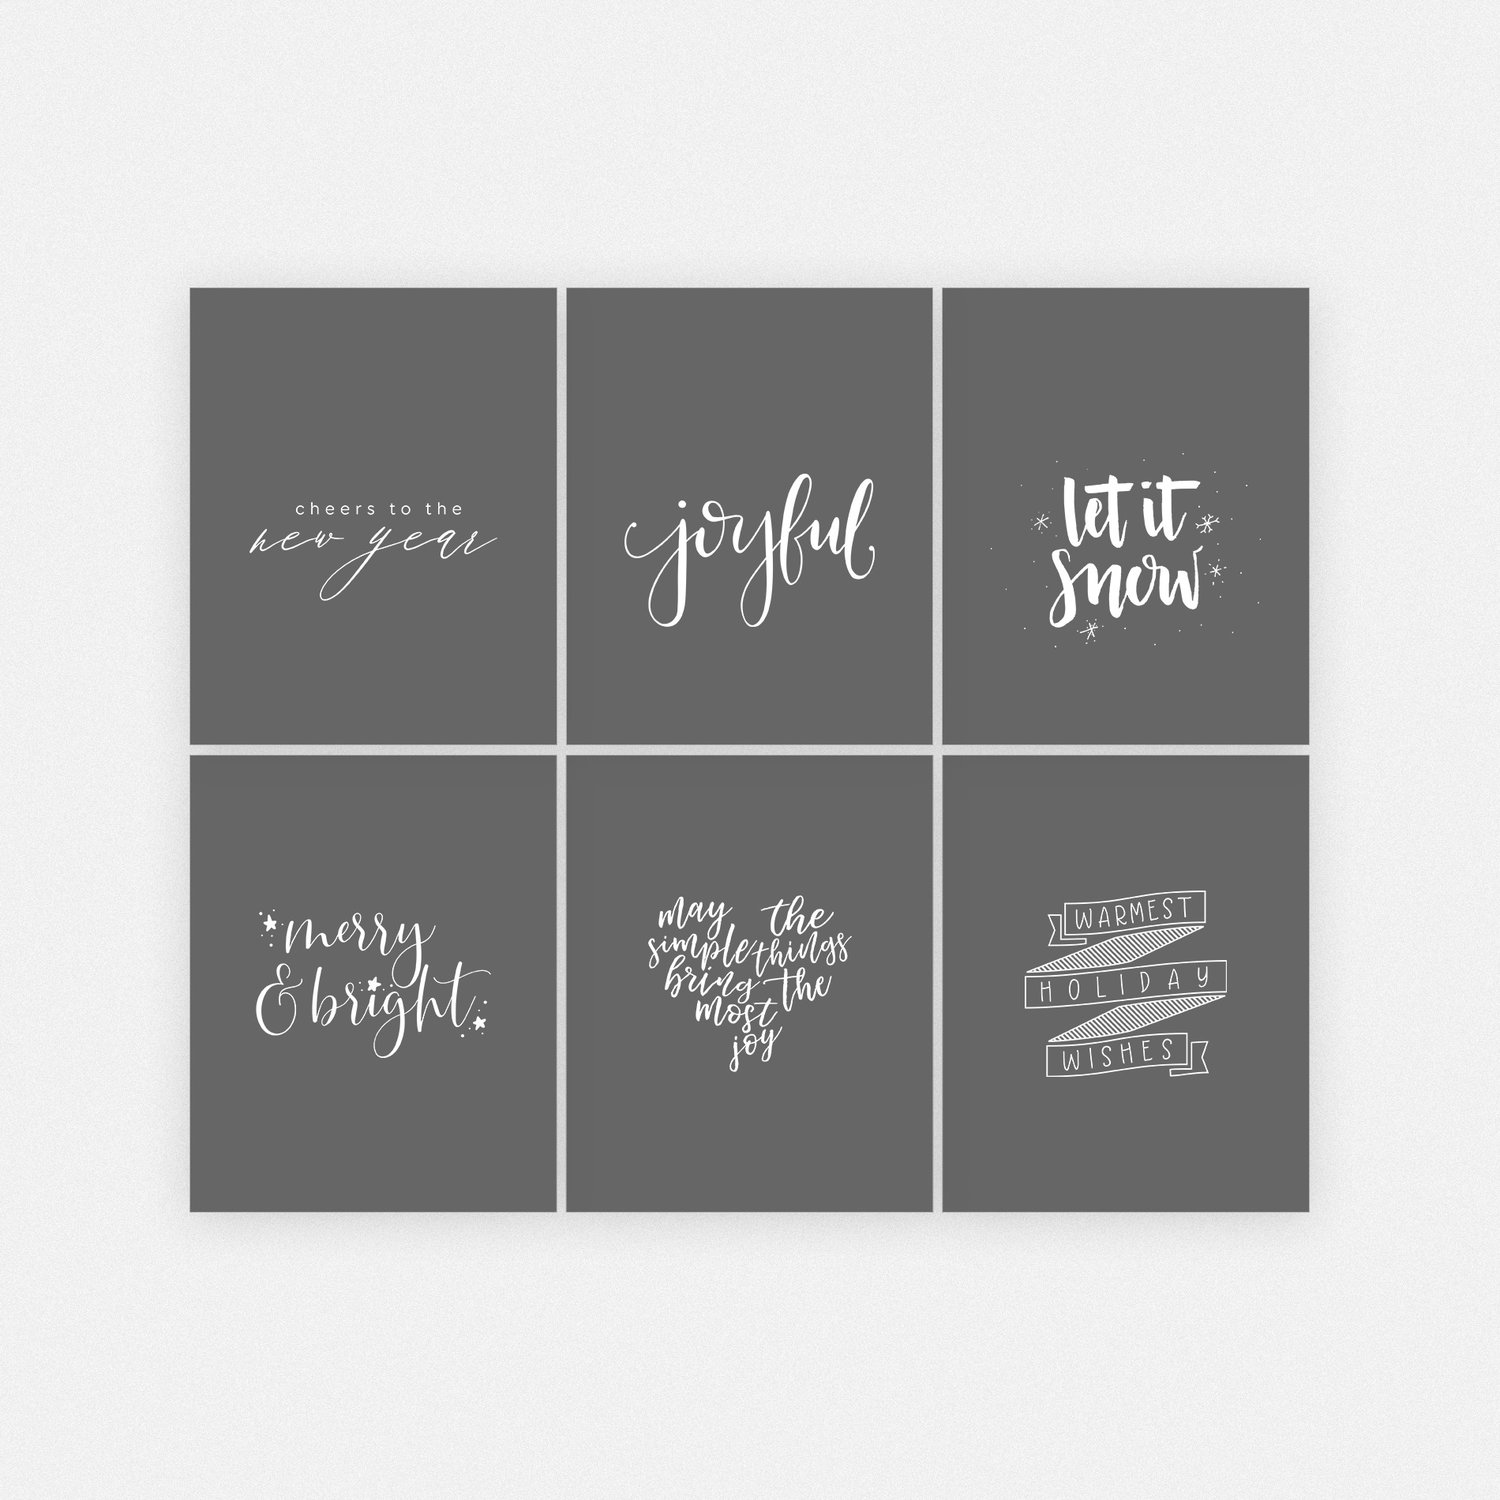 Handwritten overlay designs for product designs or social media